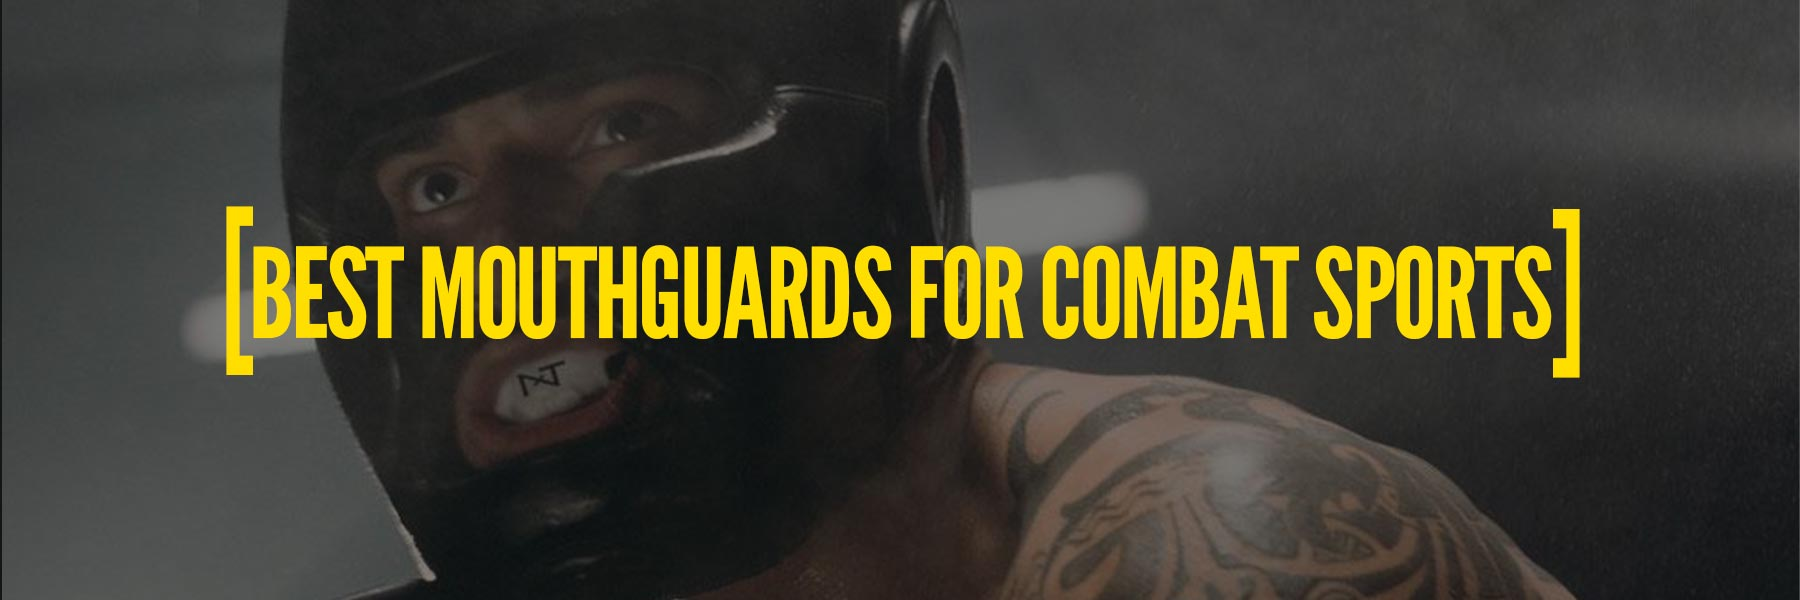 Best Combat Sports Mouthguards